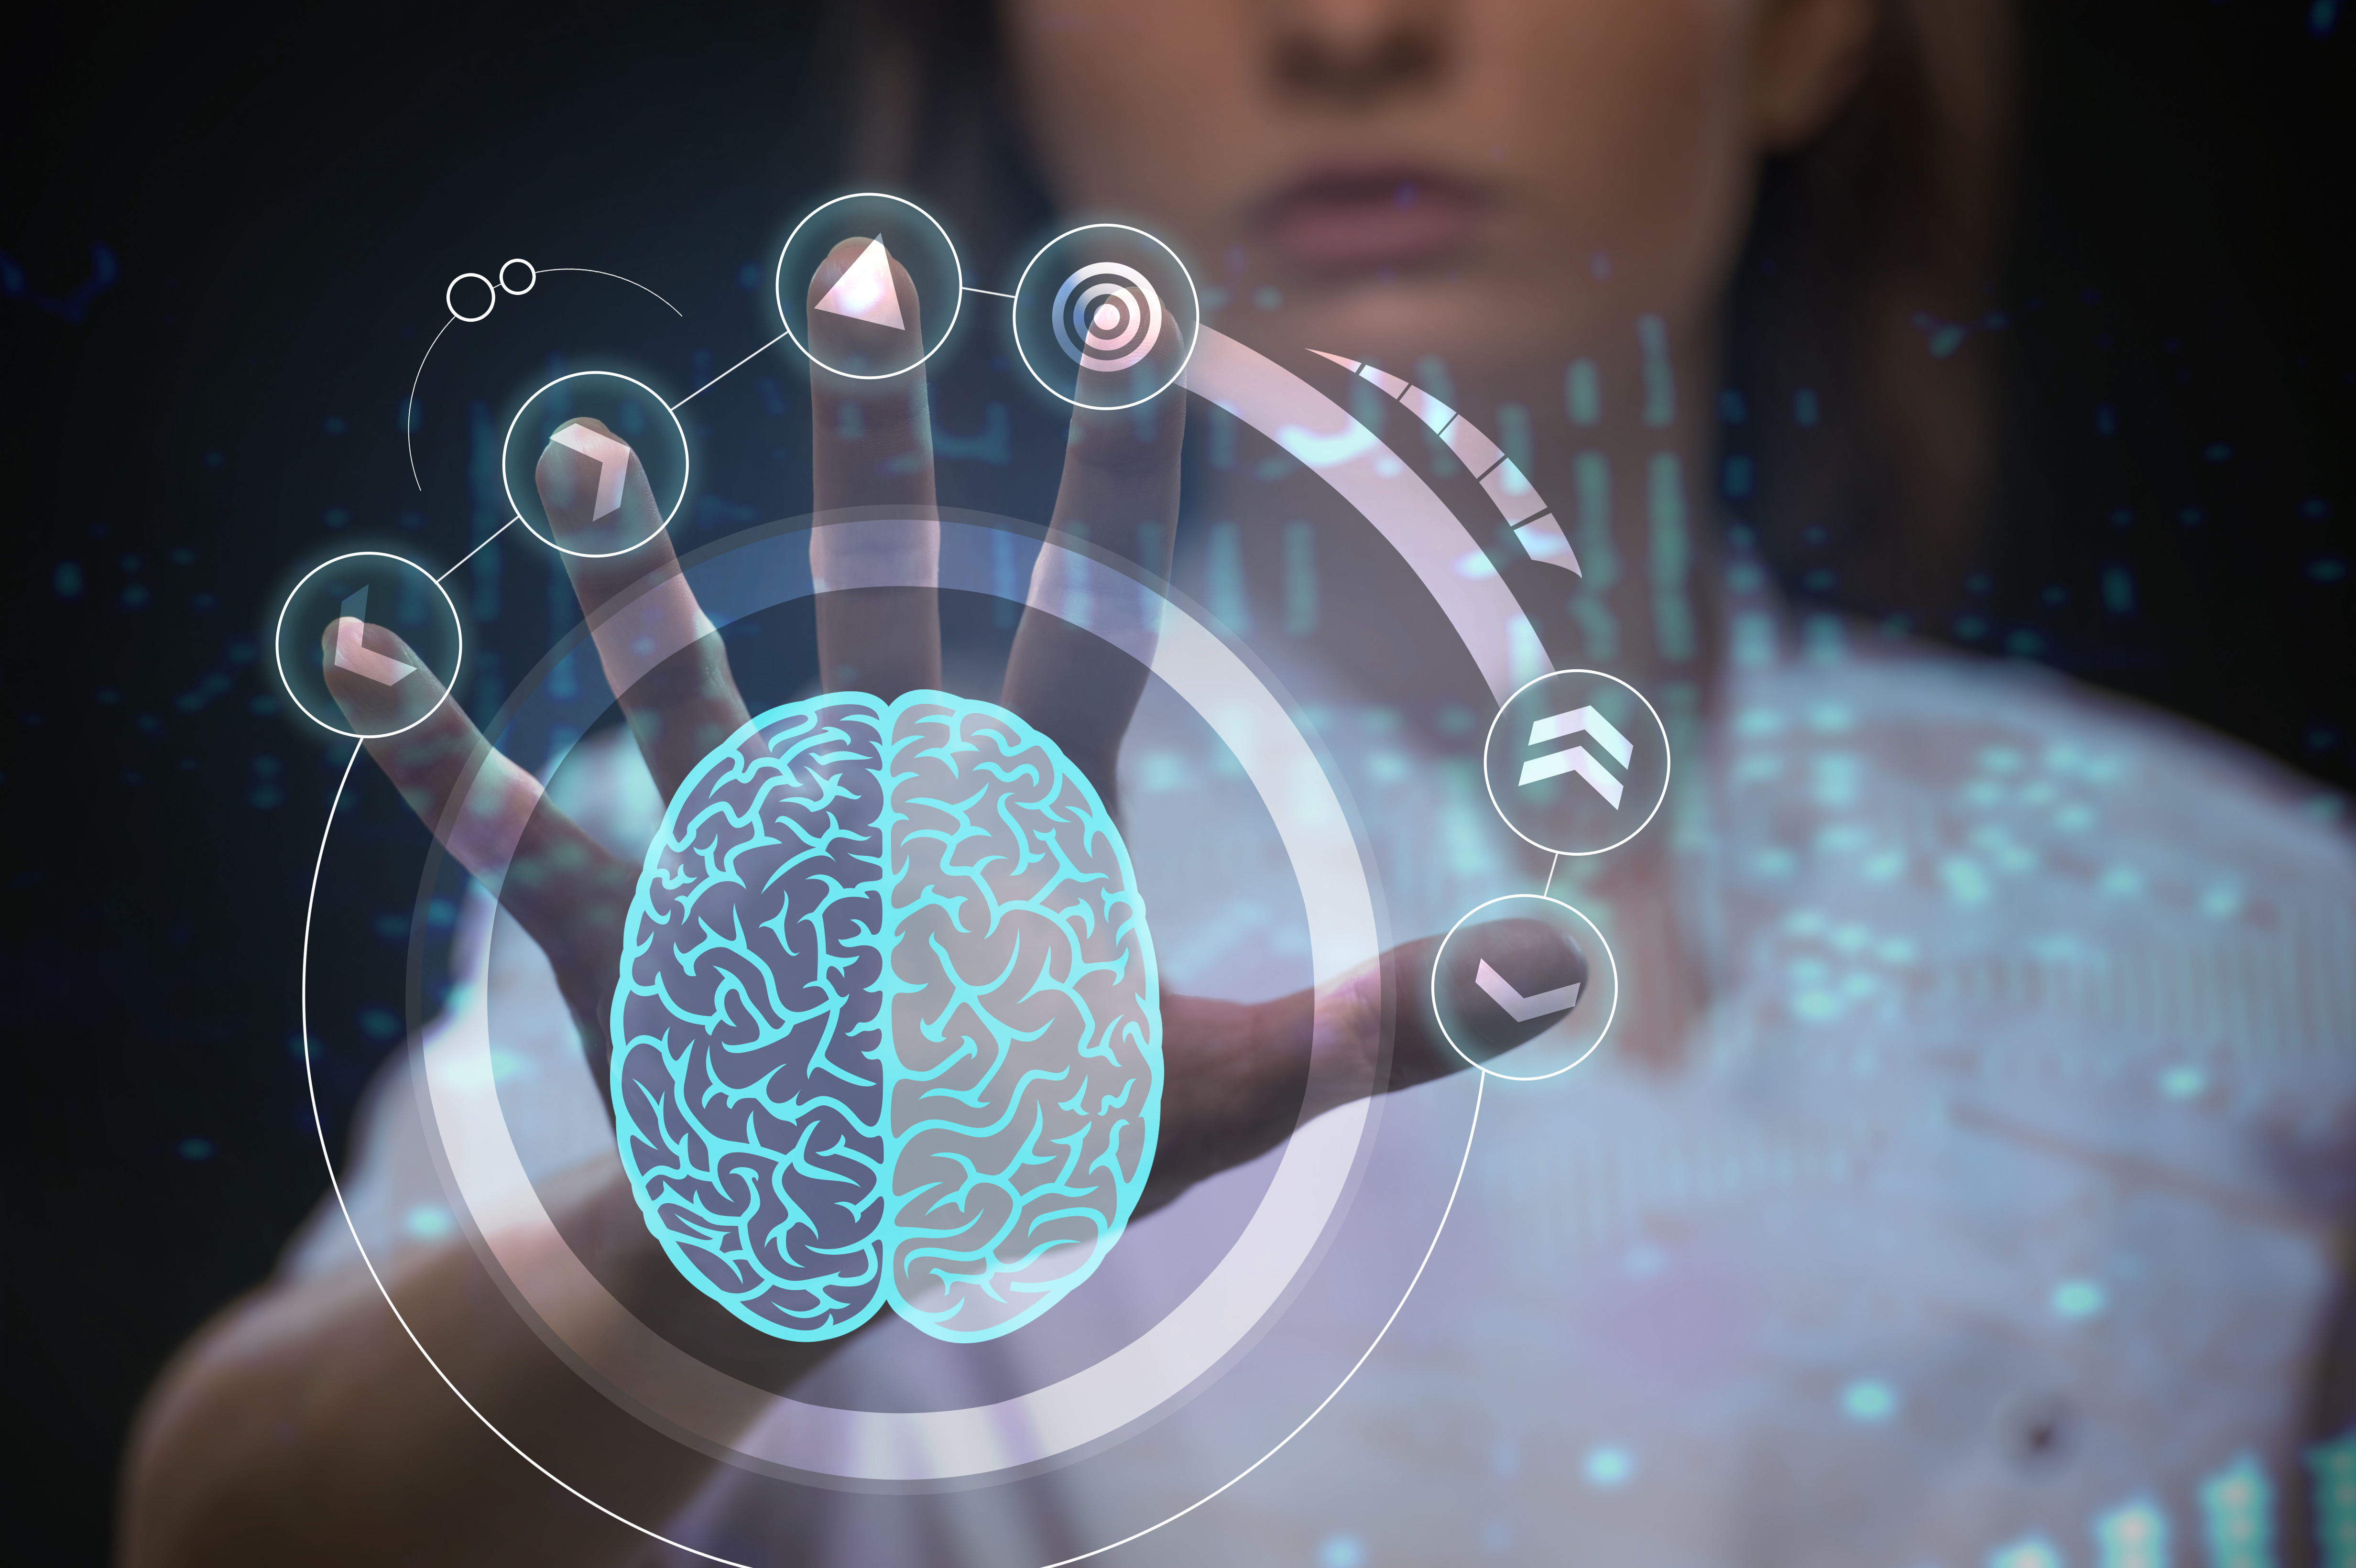 Futuristic touchscreen with a brain in the middle of the screen (Branding picture Drivers - brain performance optimization)